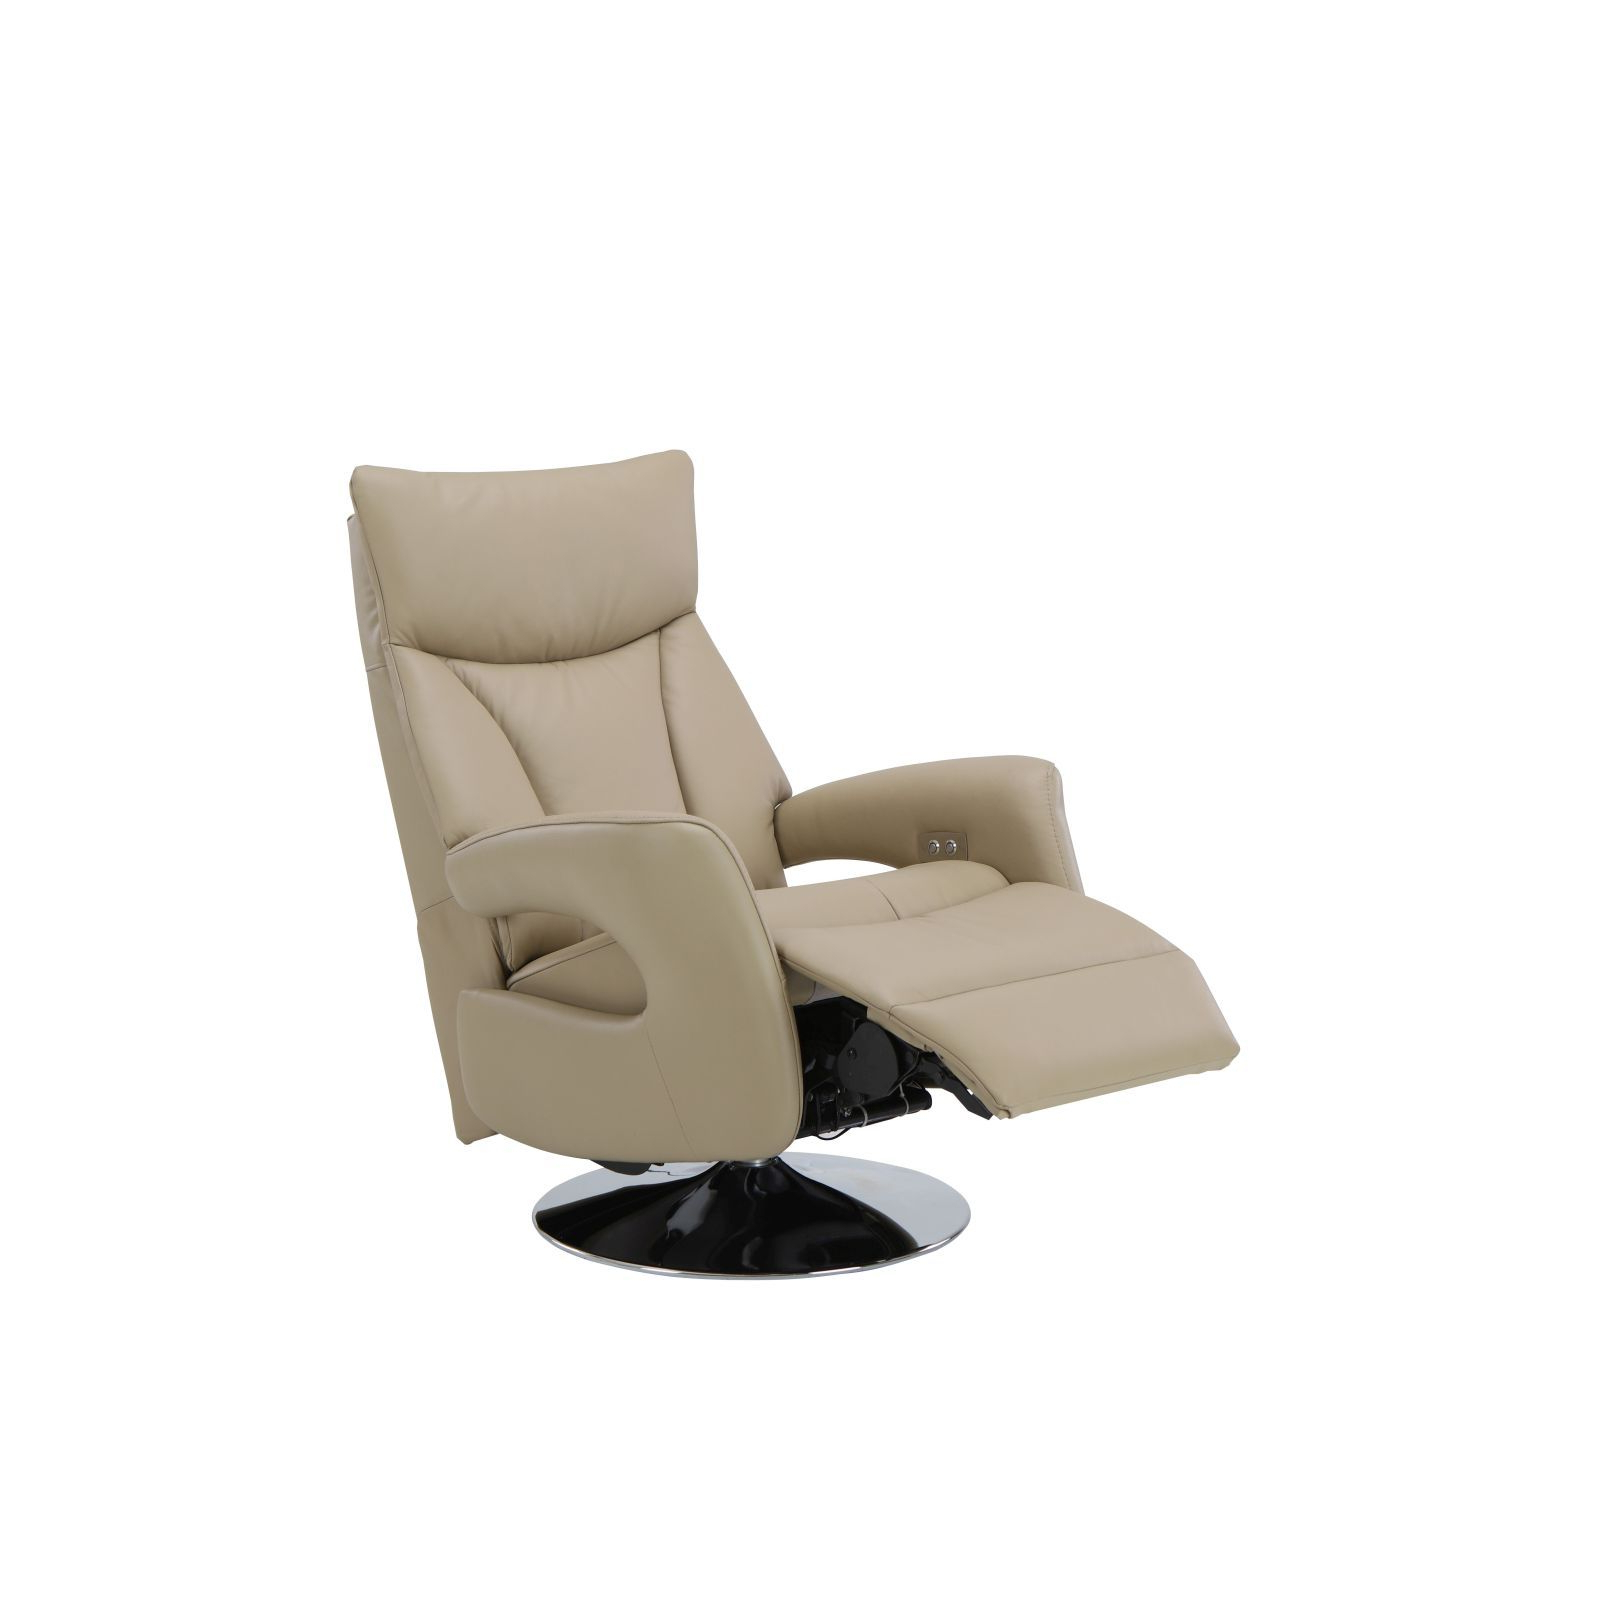 Stanley Power Lift Chair (Hl) Half Leather Recliner Sofa – Sofa Regarding Famous Recliner Sofa Chairs (View 17 of 20)